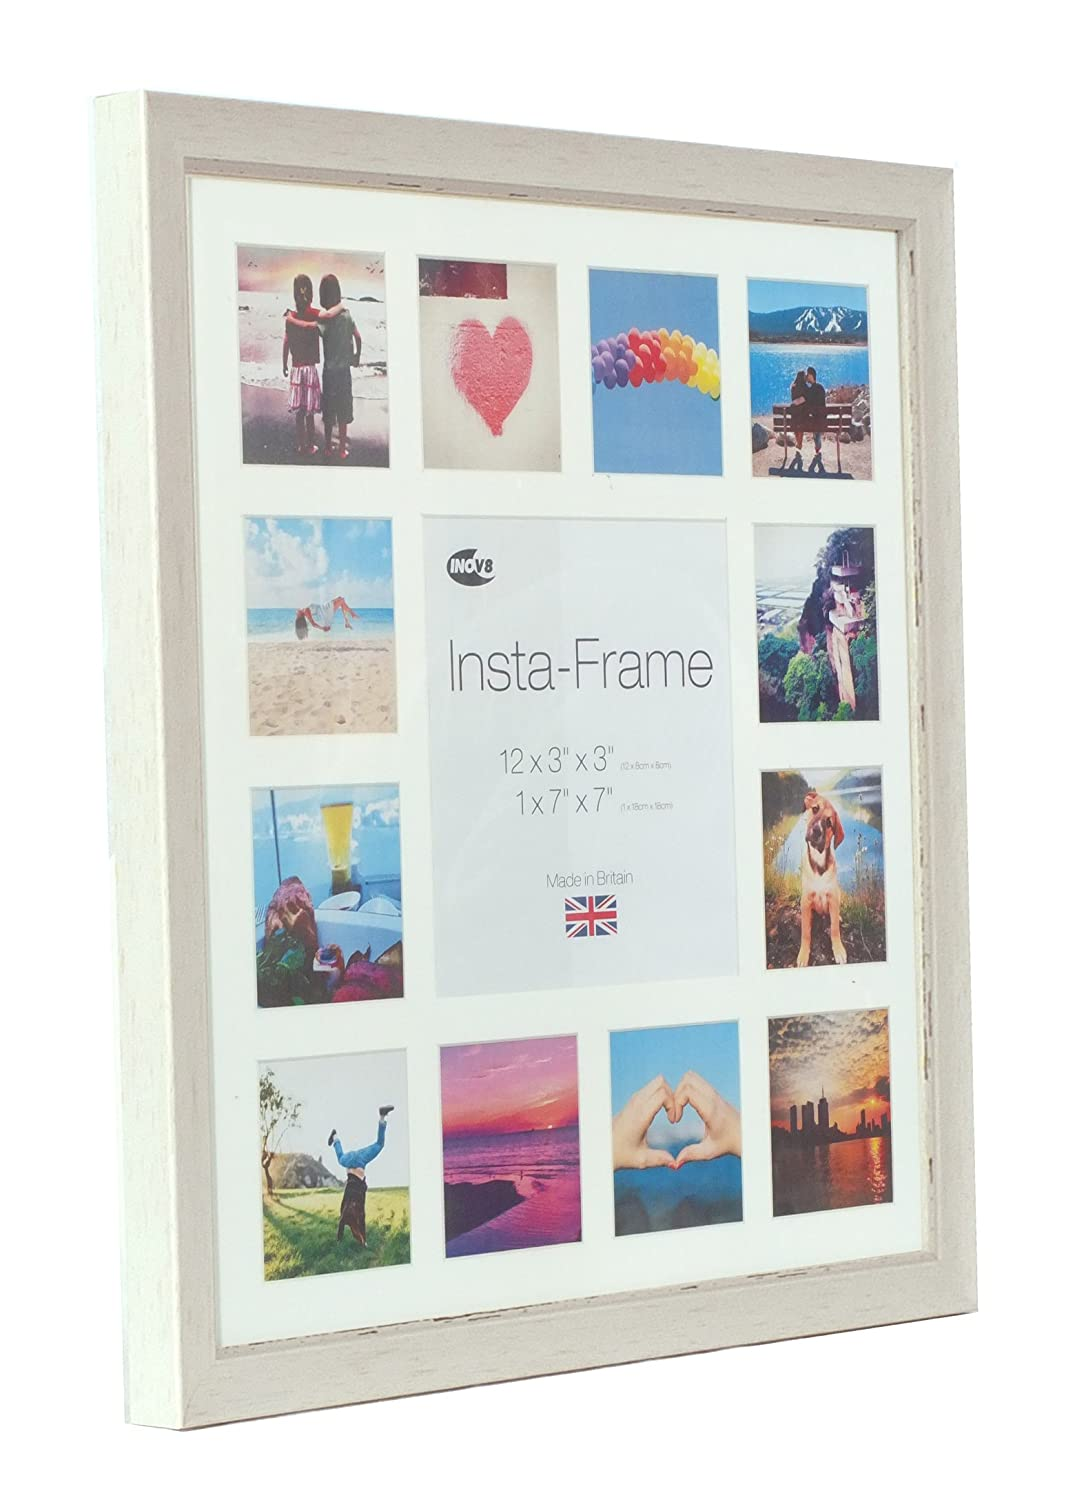 Inov8 Insta Sml Wash 16x16 Inch Picture Frame for 13 Instagram ...